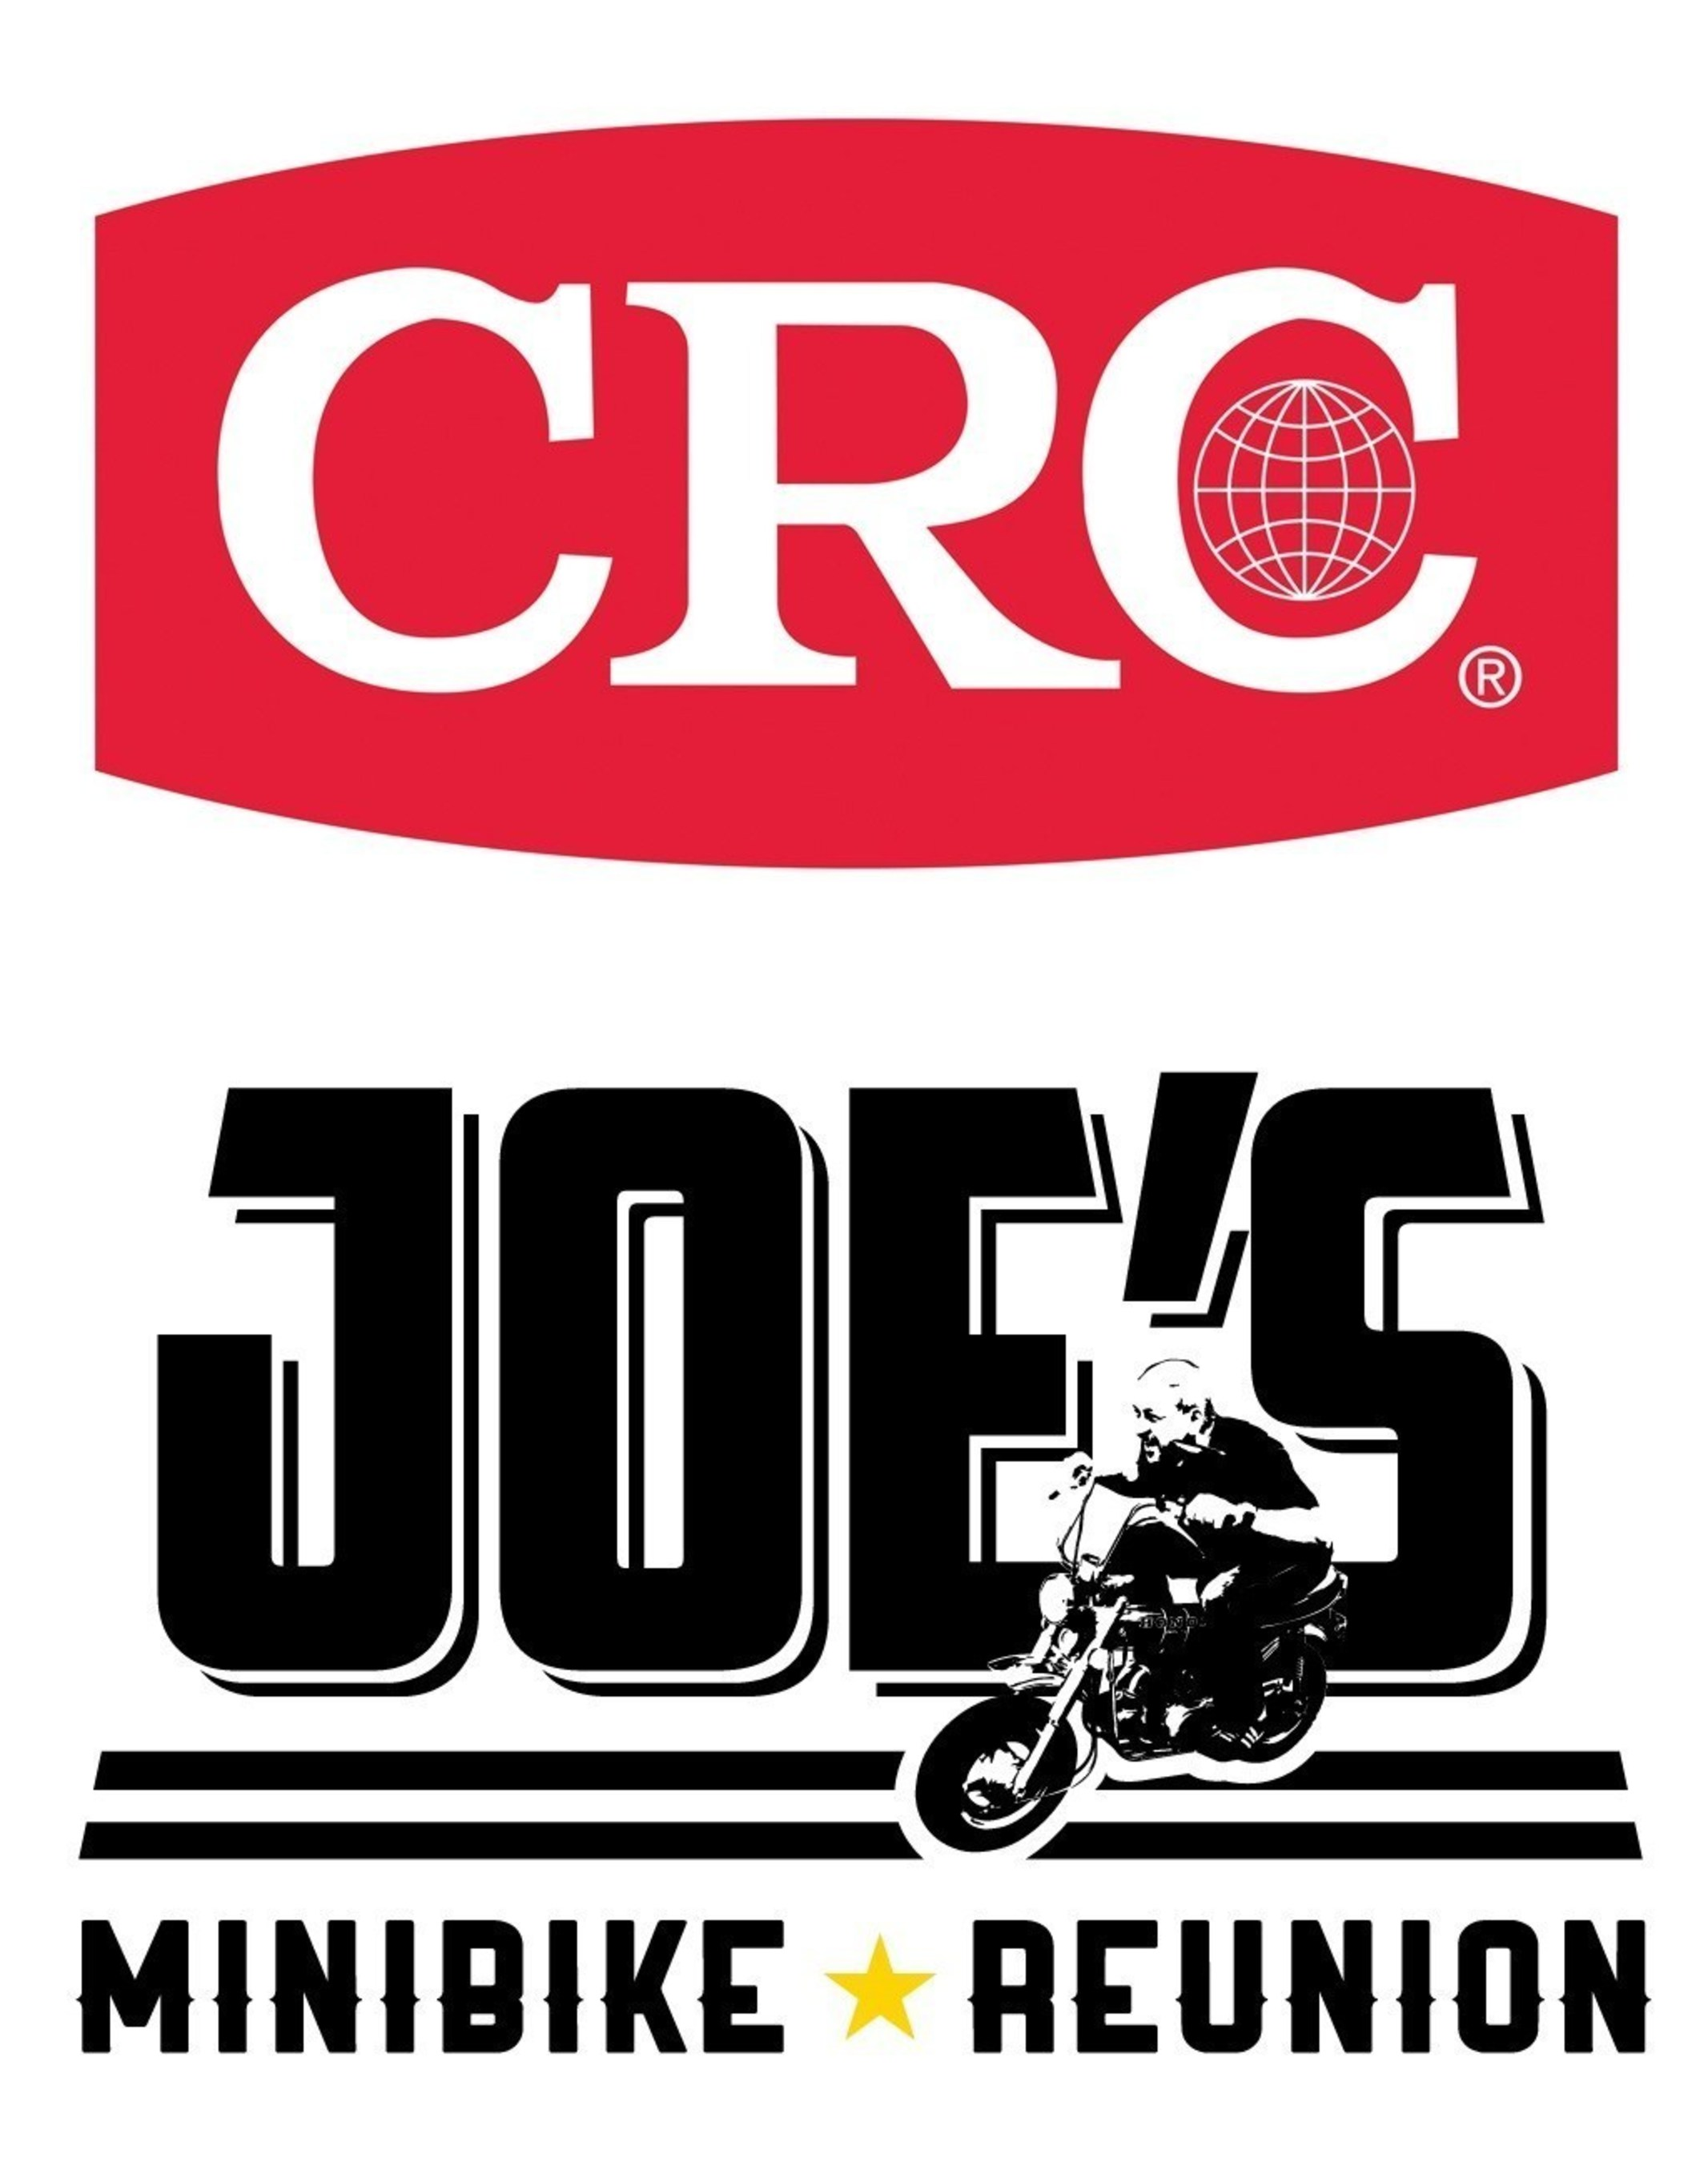 CRC Industries and Joe's Minibike Reunion Combine Efforts to Custom